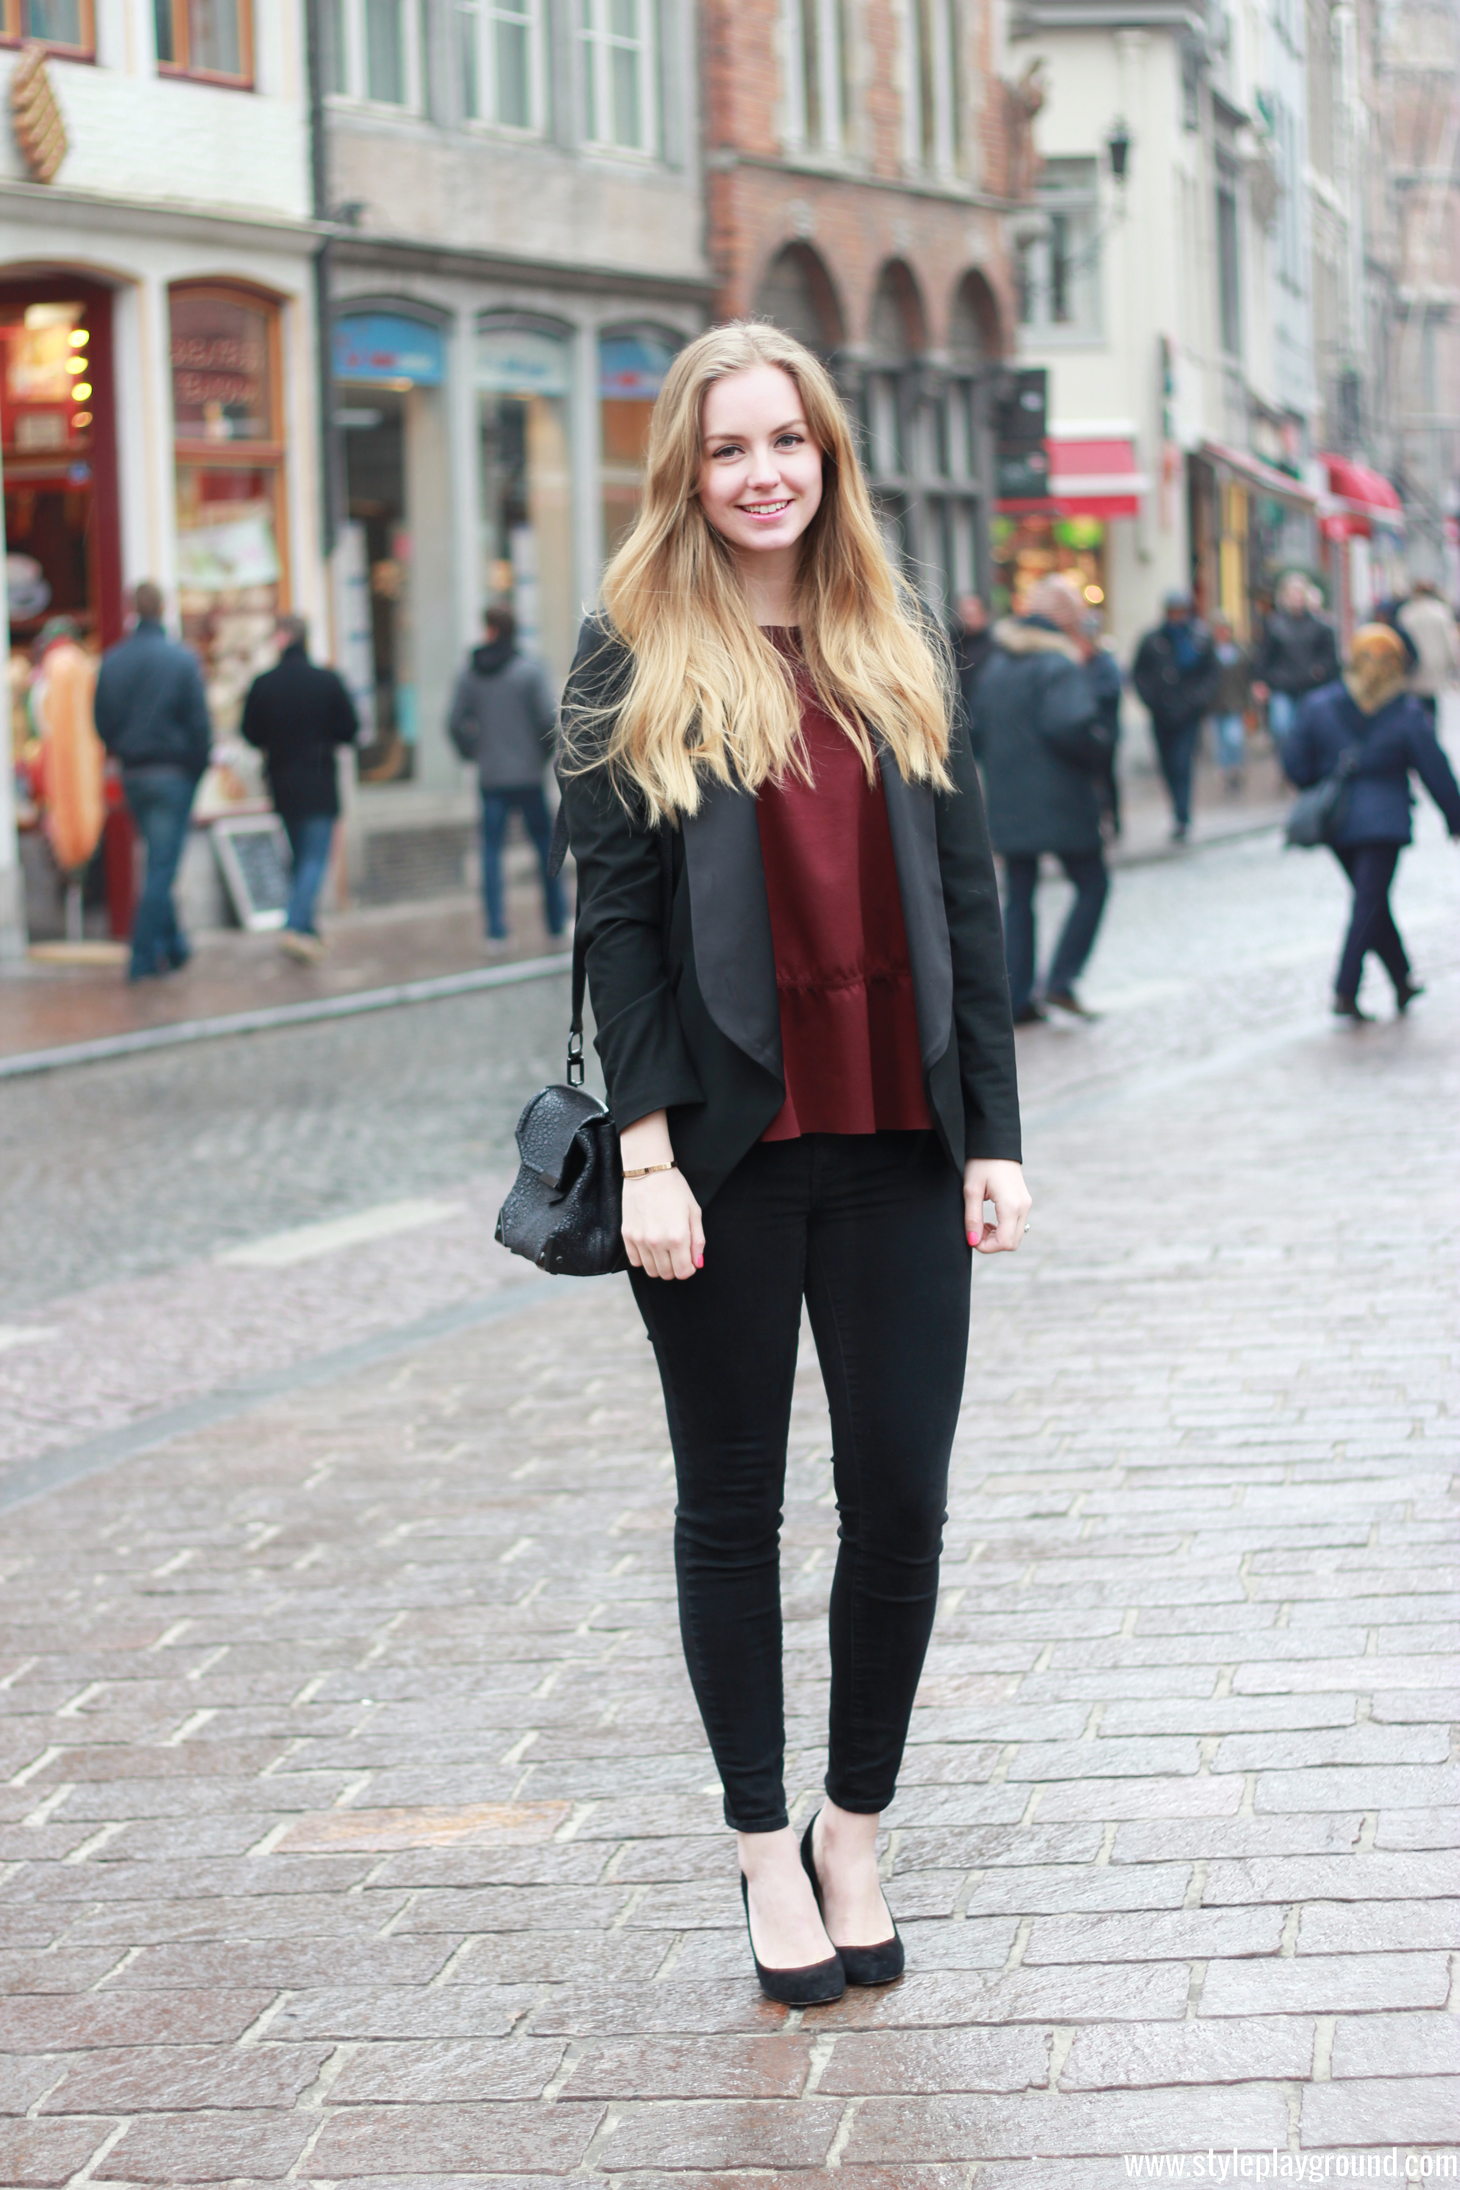 Axelle Blanpain from Style playground is wearing an H&M top, Michael Kors blazer, J Brand skinny jeans, J crew pumps & Alexander Wang bag